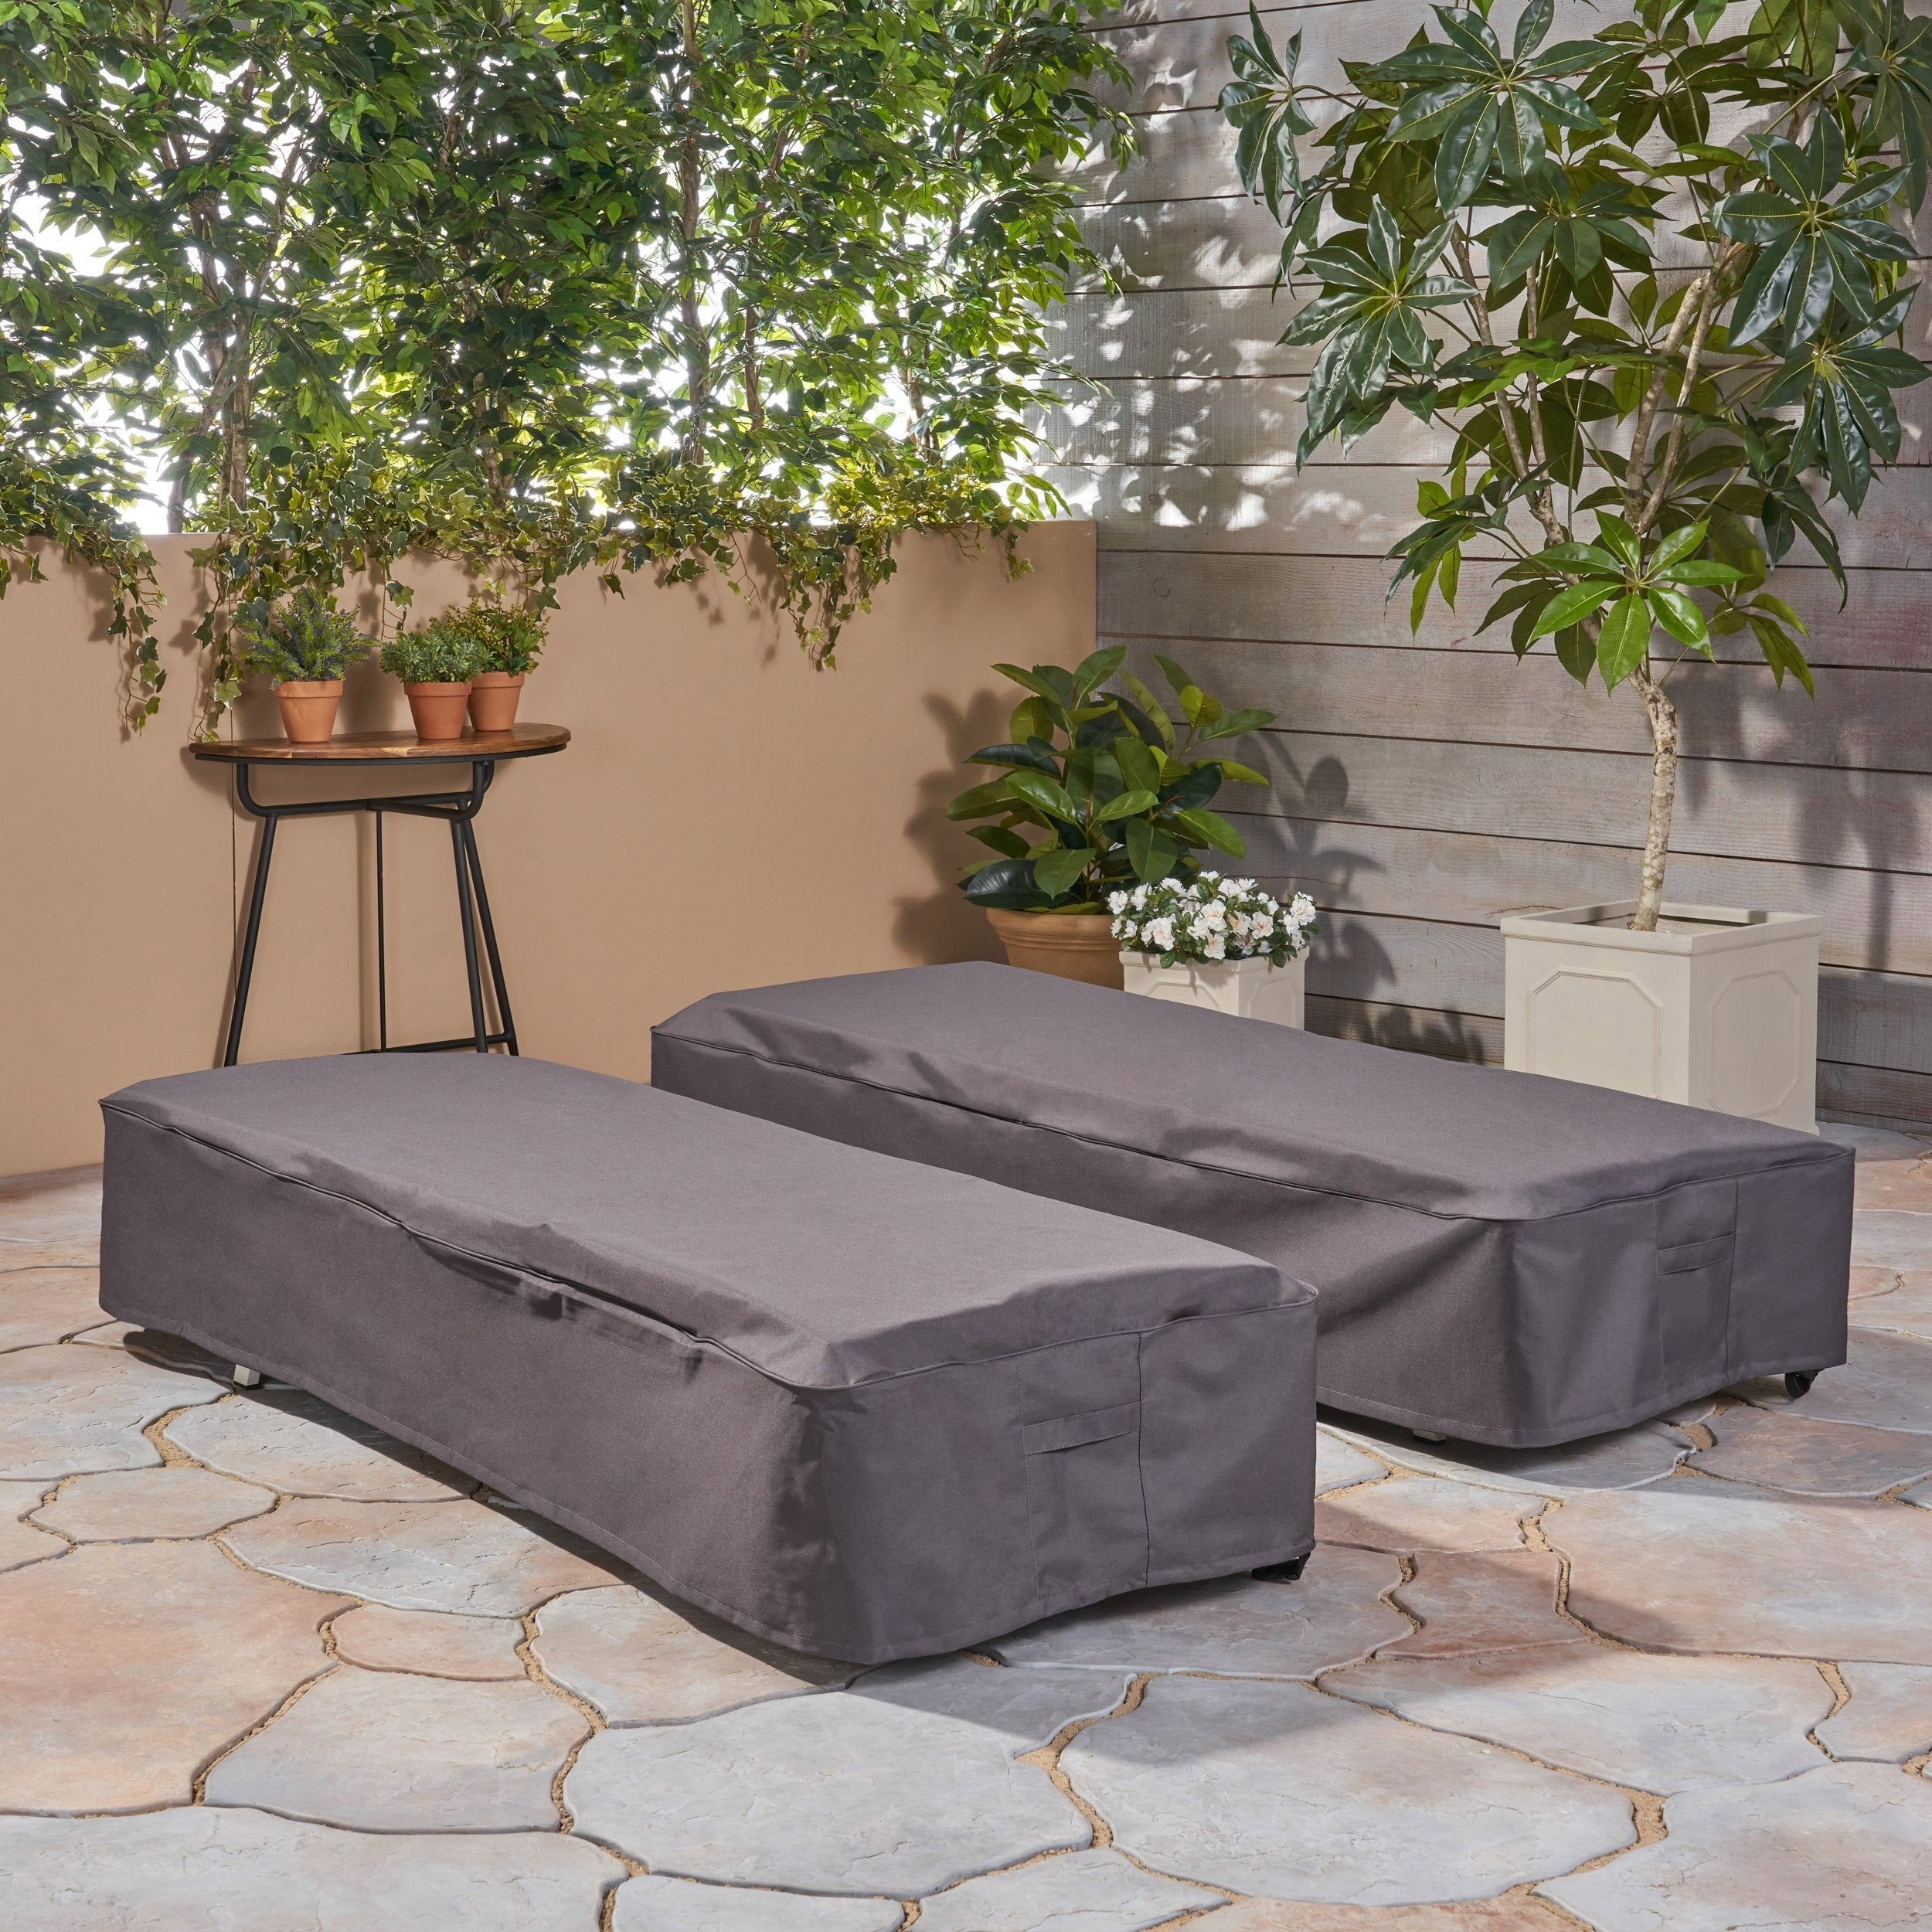 Shield Outdoor Chaise Lounge Cover